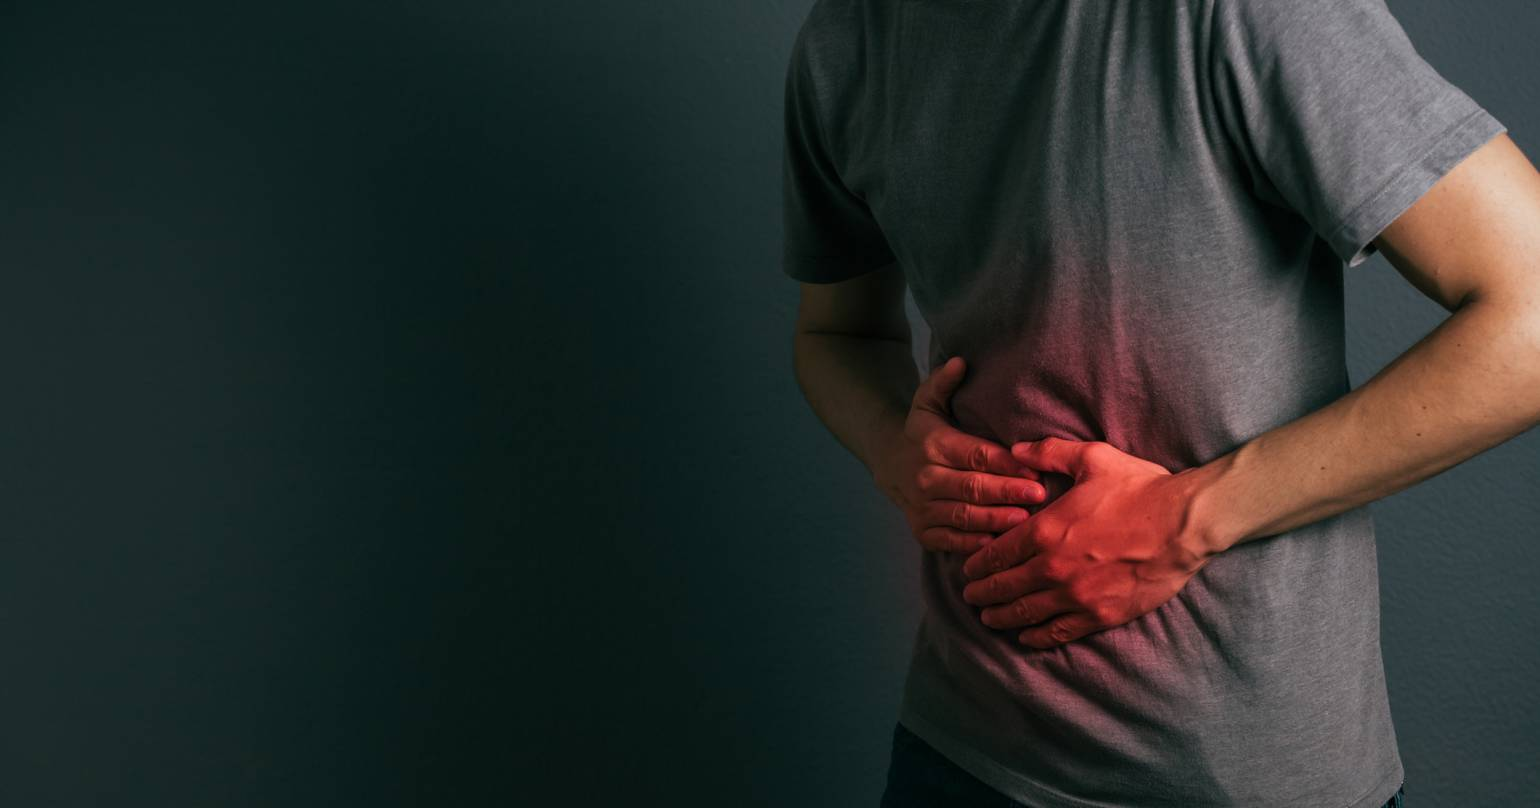 Stomach Ulcers: How To Prevent & Treat Them